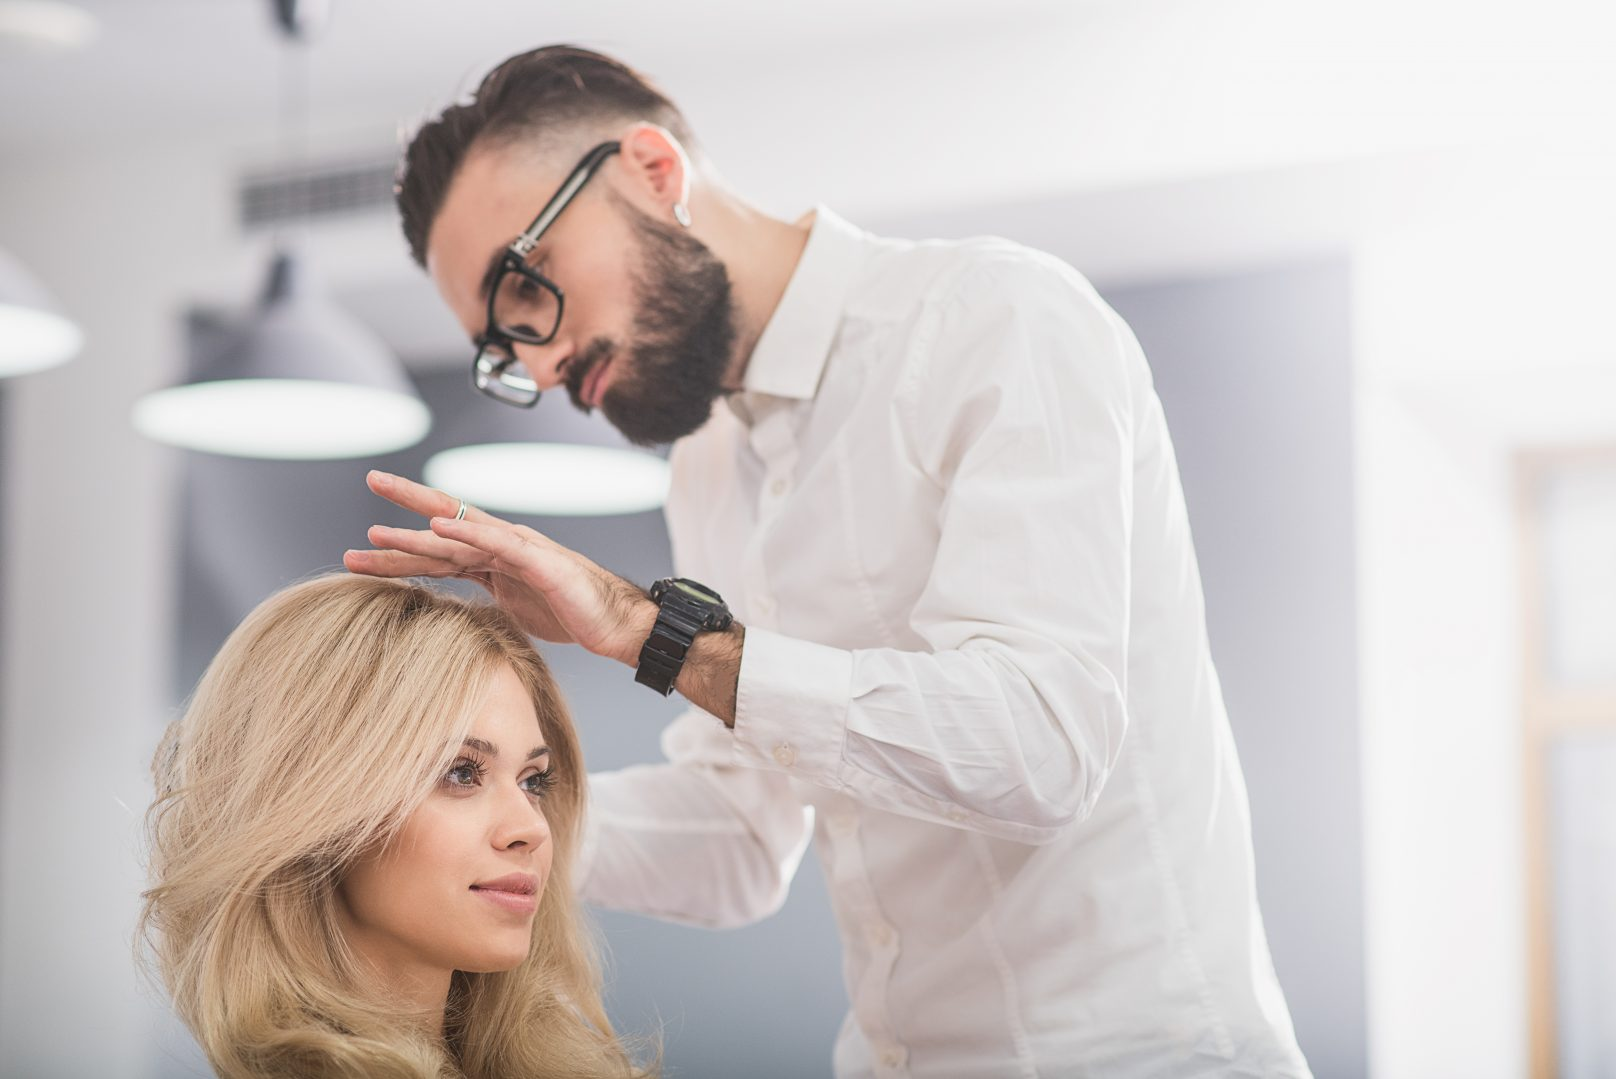 Top 4 Reasons People Pursue Cosmetology